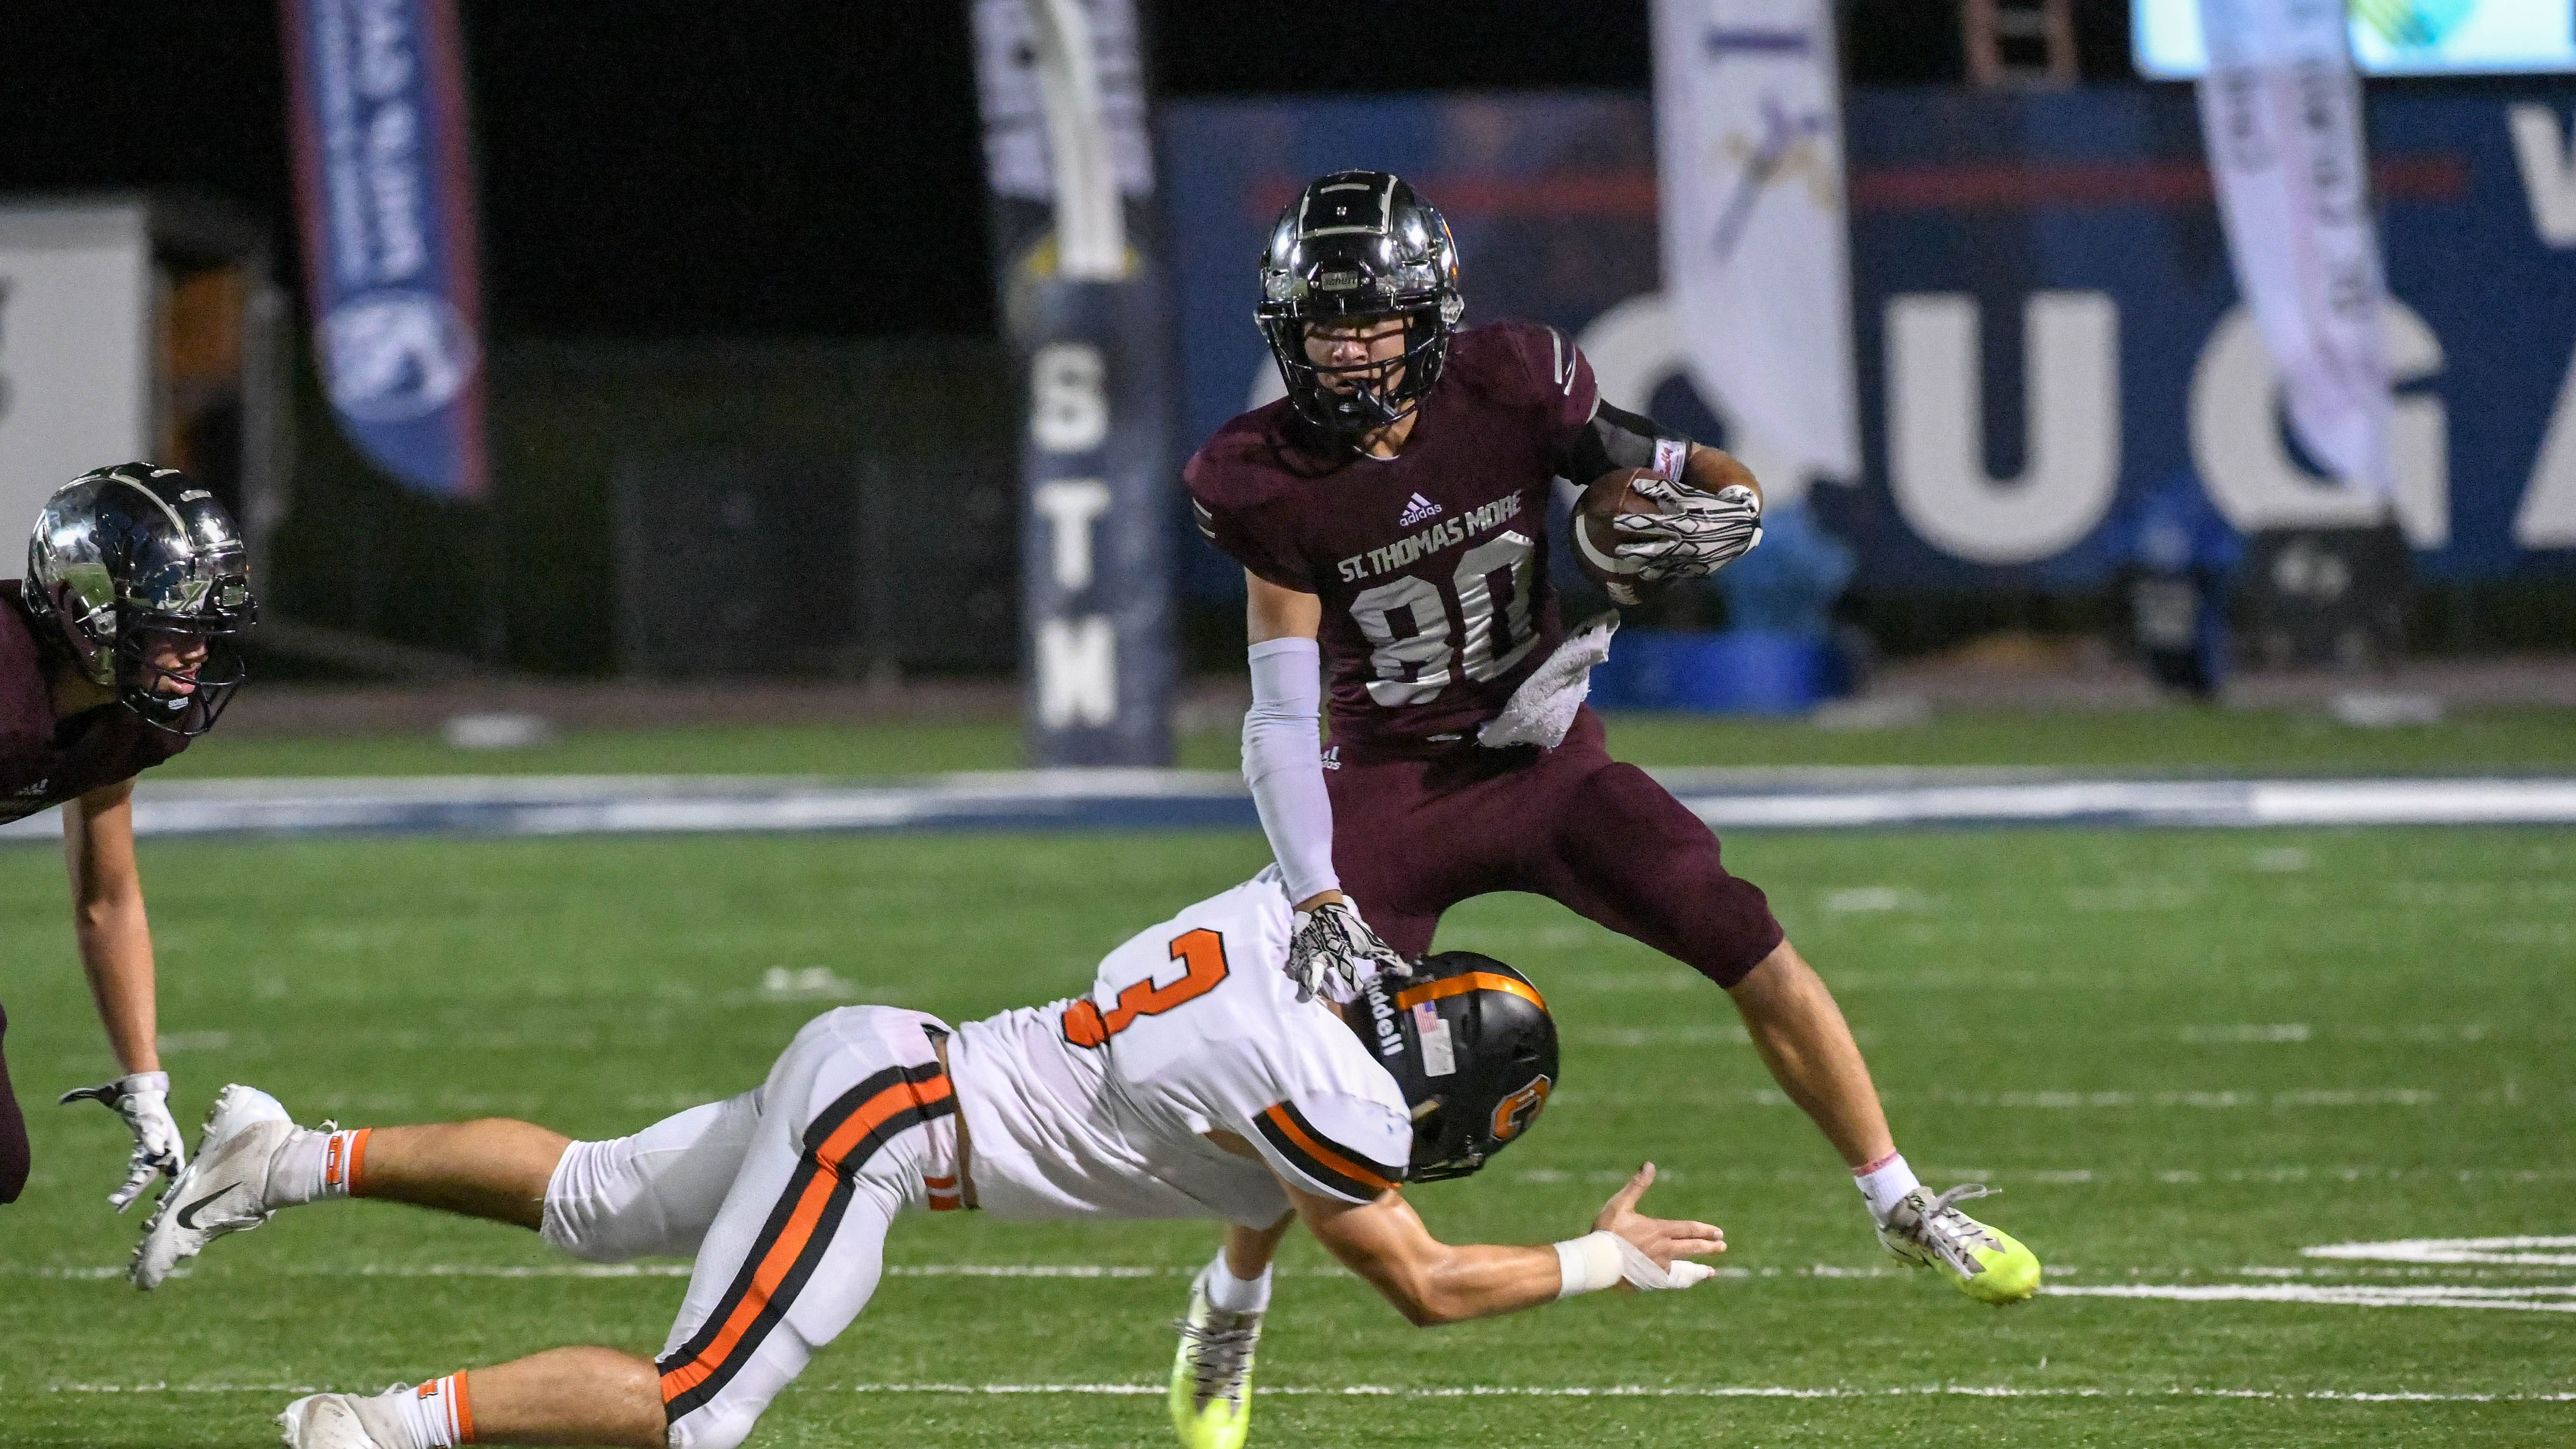 Catholic finds way to neutralize STM's offense